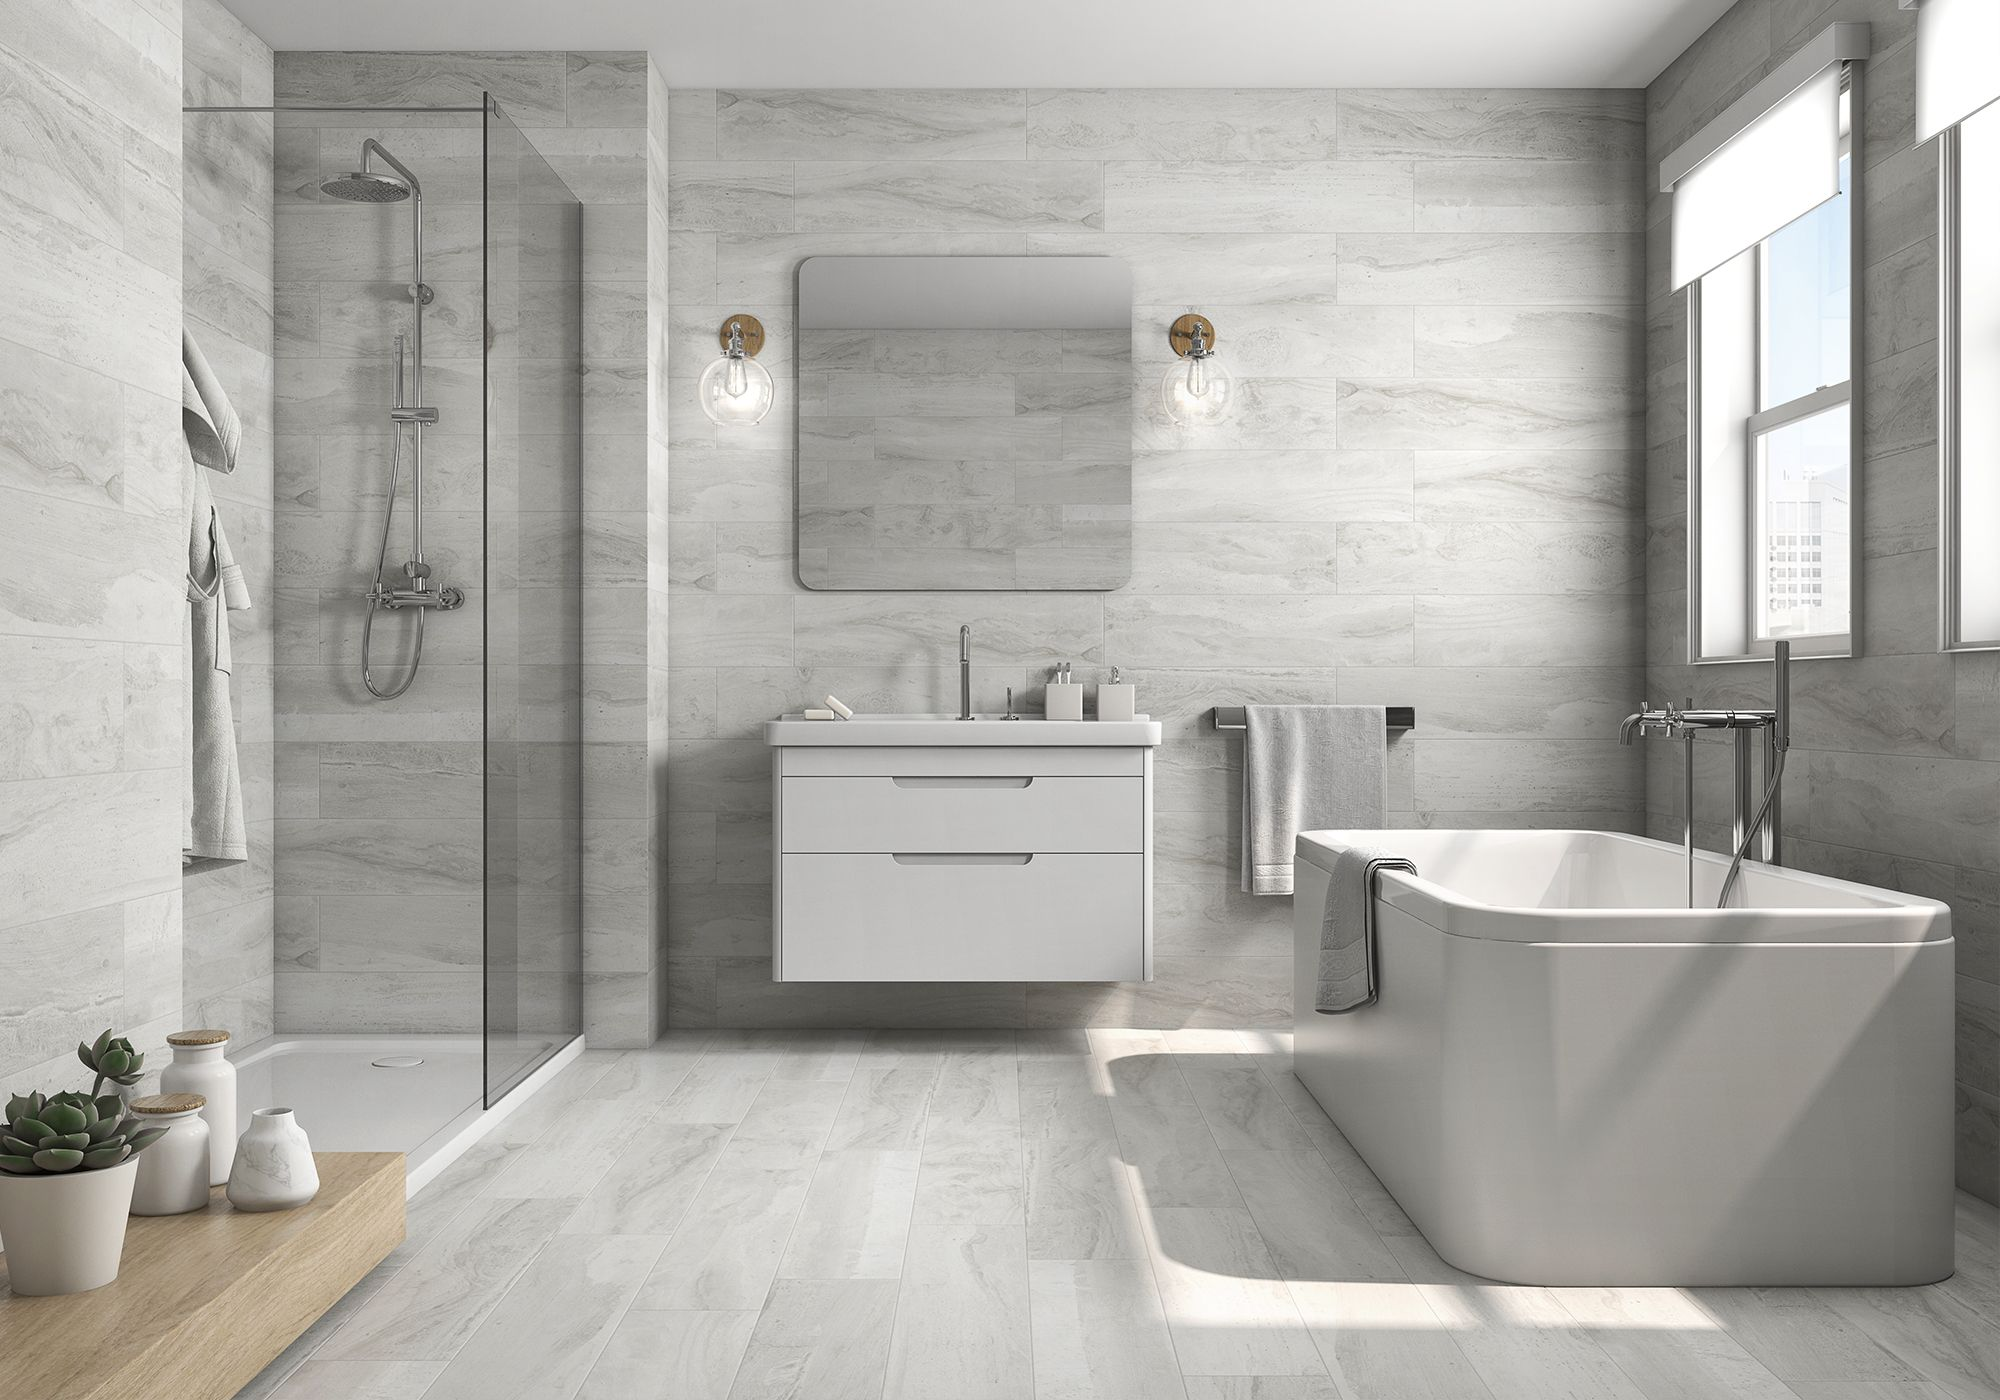 Wood Grain Porcelain Tile Bathroom Contemporary With Bathroom Floating Vanity Miami Minimalist Mirr Minimalist Bathroom Design Bathroom Wall Tile Tile Bathroom